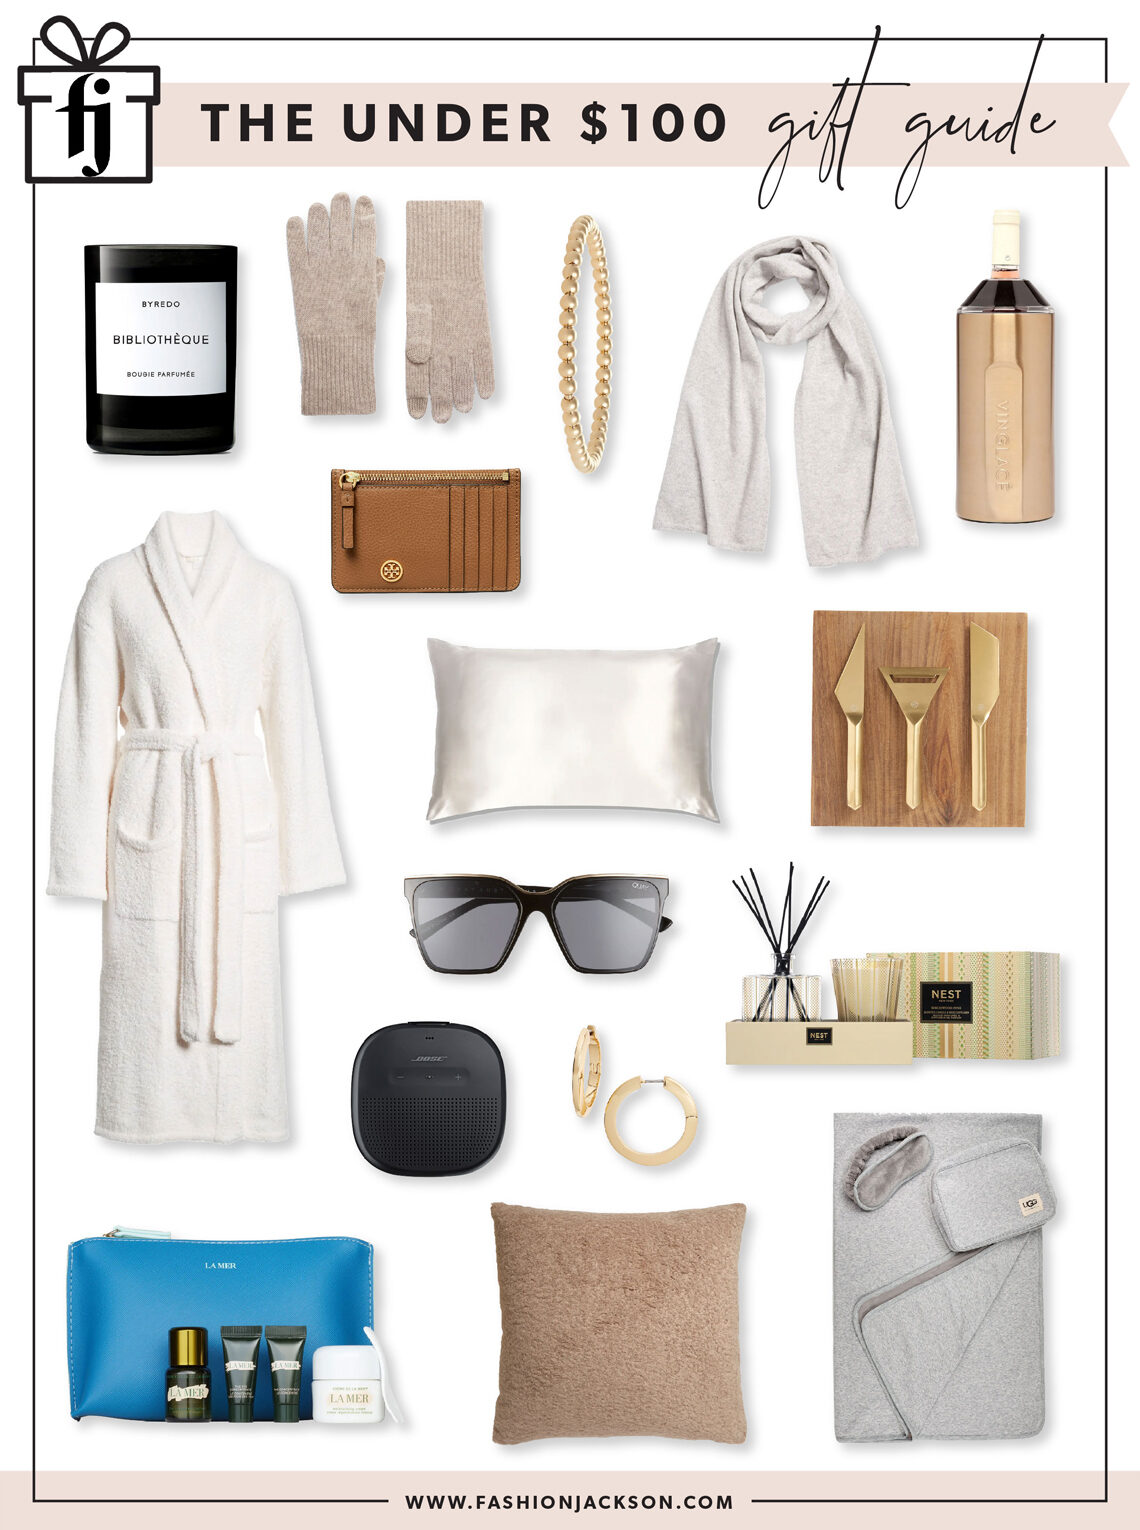 Fashion Jackson Holiday 2020 Nordstrom Under $100 Gift Guide